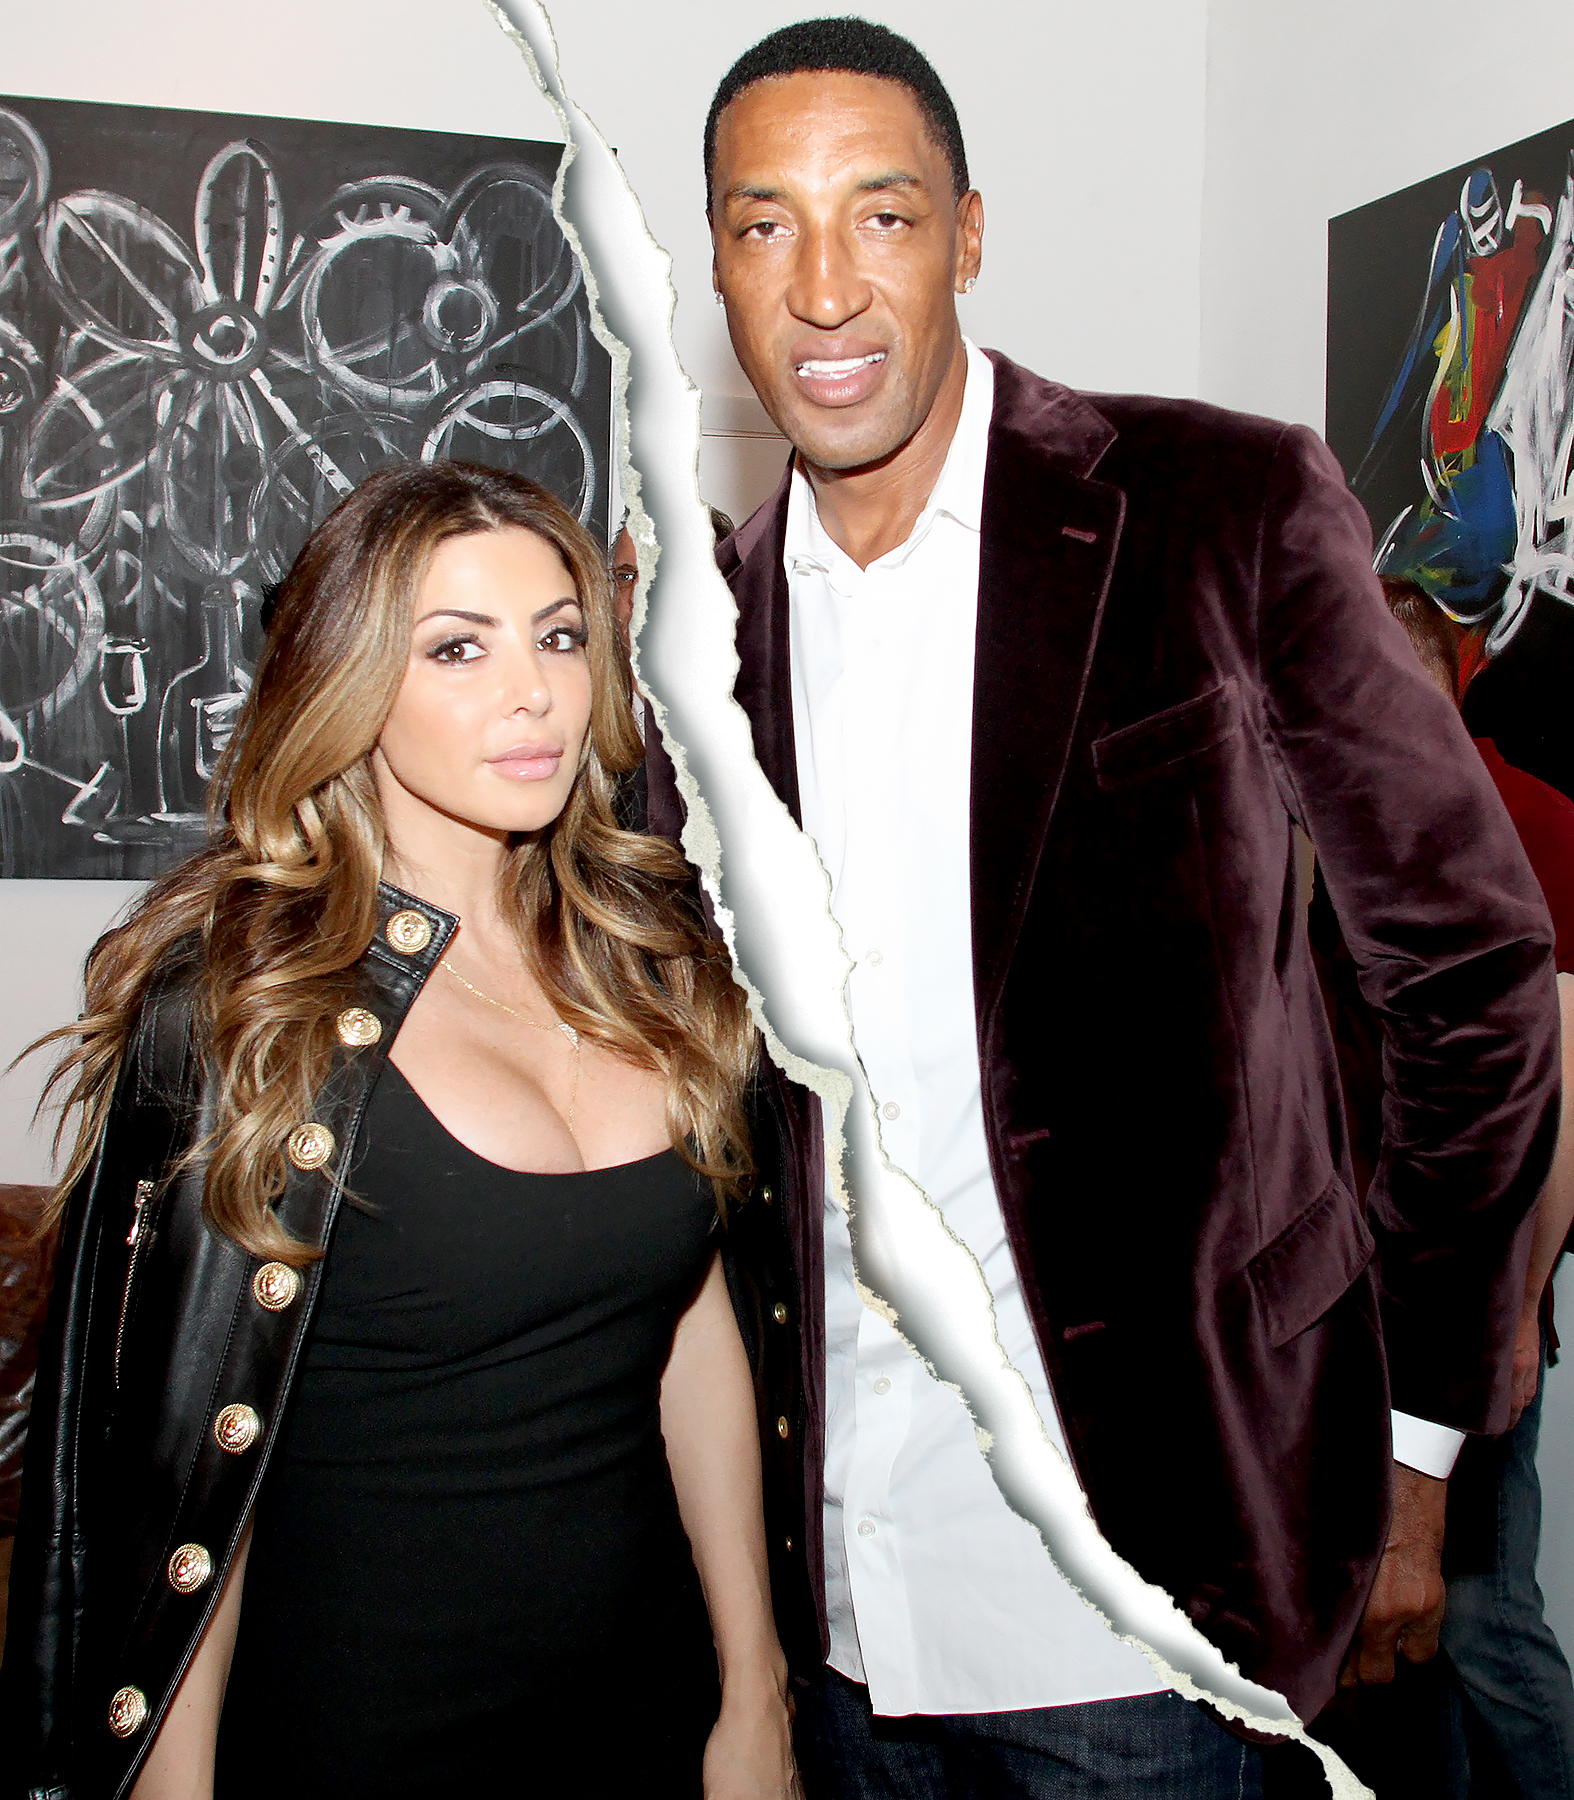 Larsa and Scottie Pippen attend Haute Living And Zacapa Rum Present Domingo Zapata At Lulu Laboratorium at Lulu Laboratorium on December 2, 2015 in Miami, Florida.